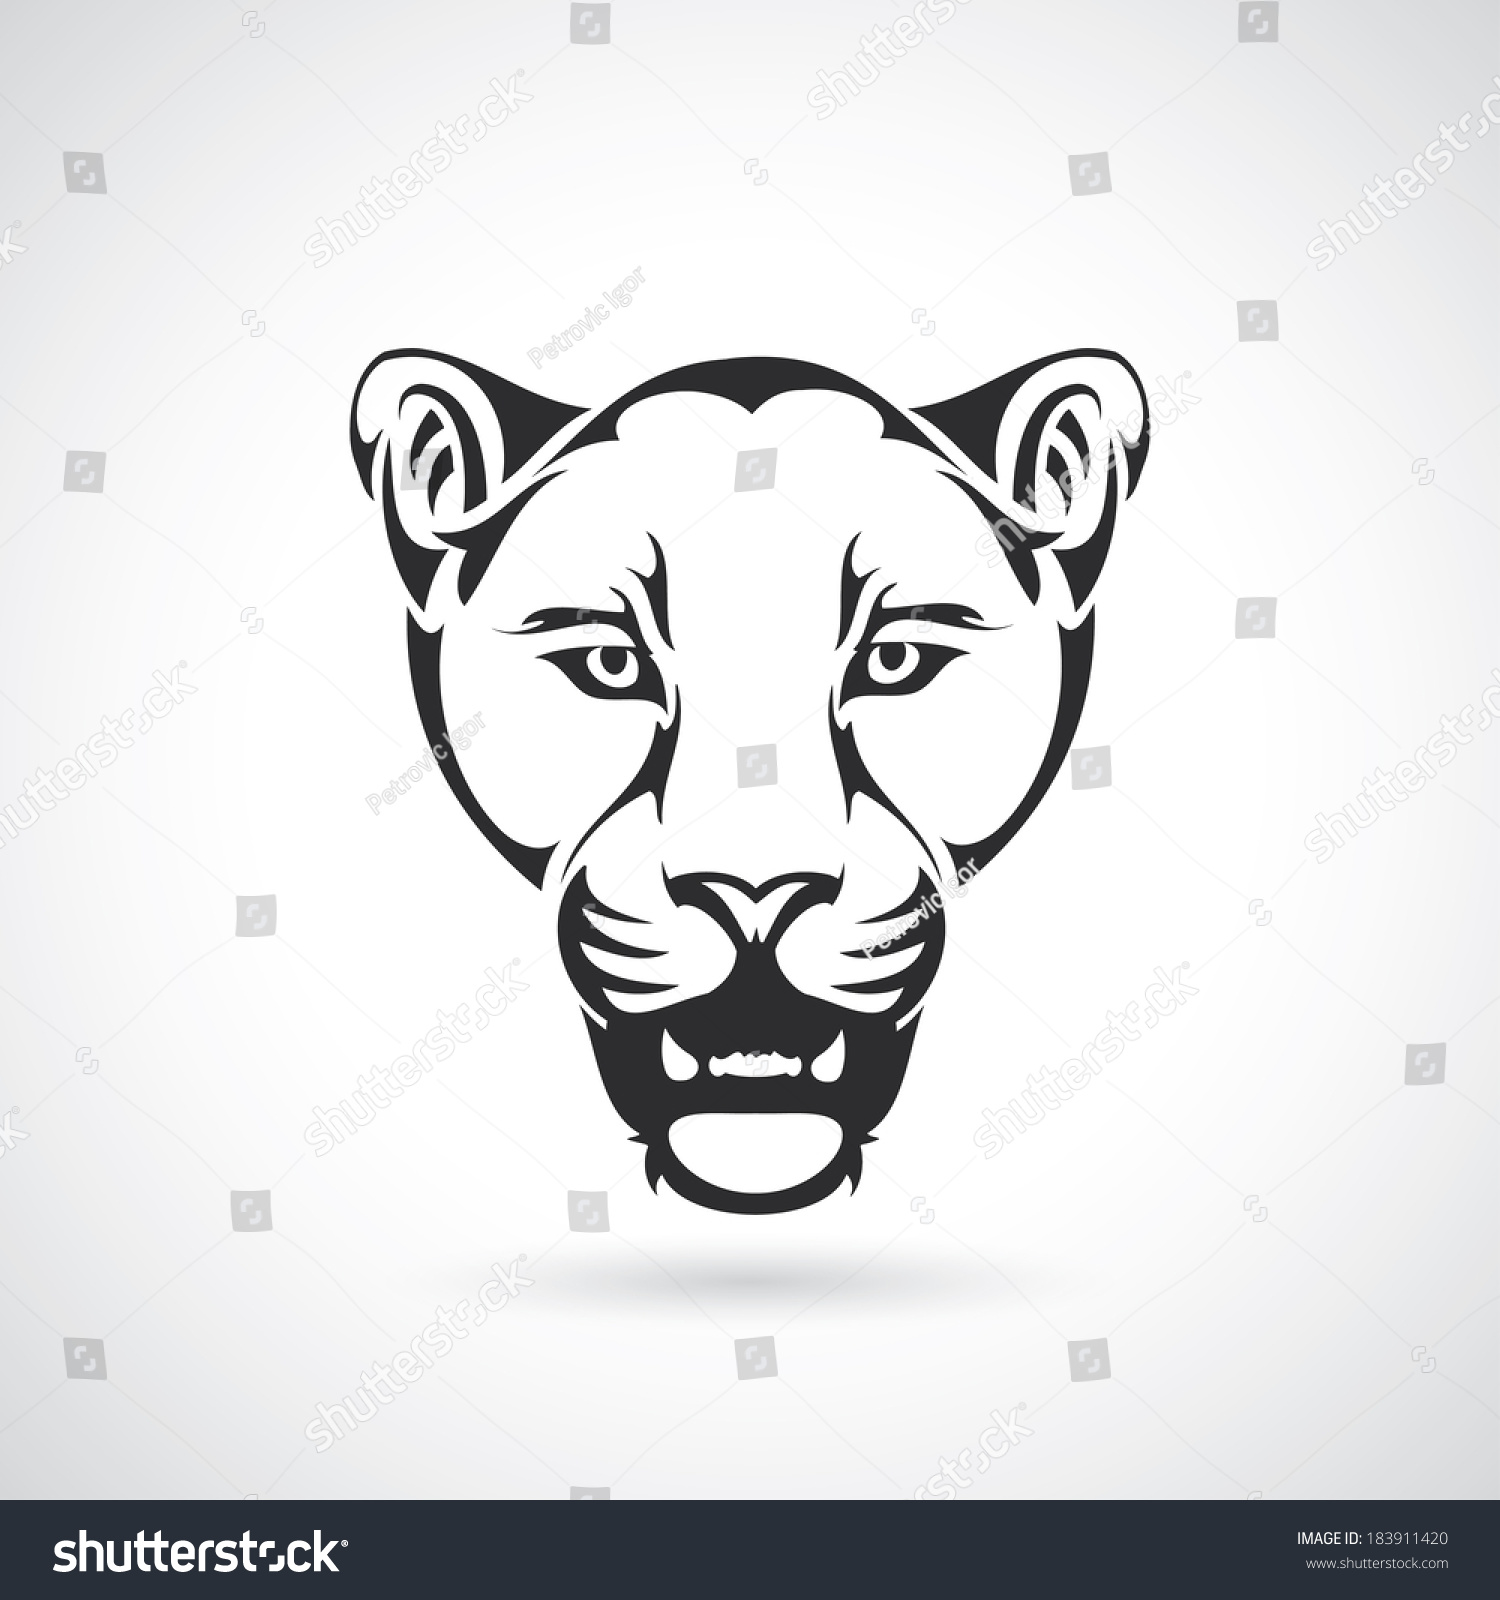 Panther Head Vector Illustration Stock Vector 183911420